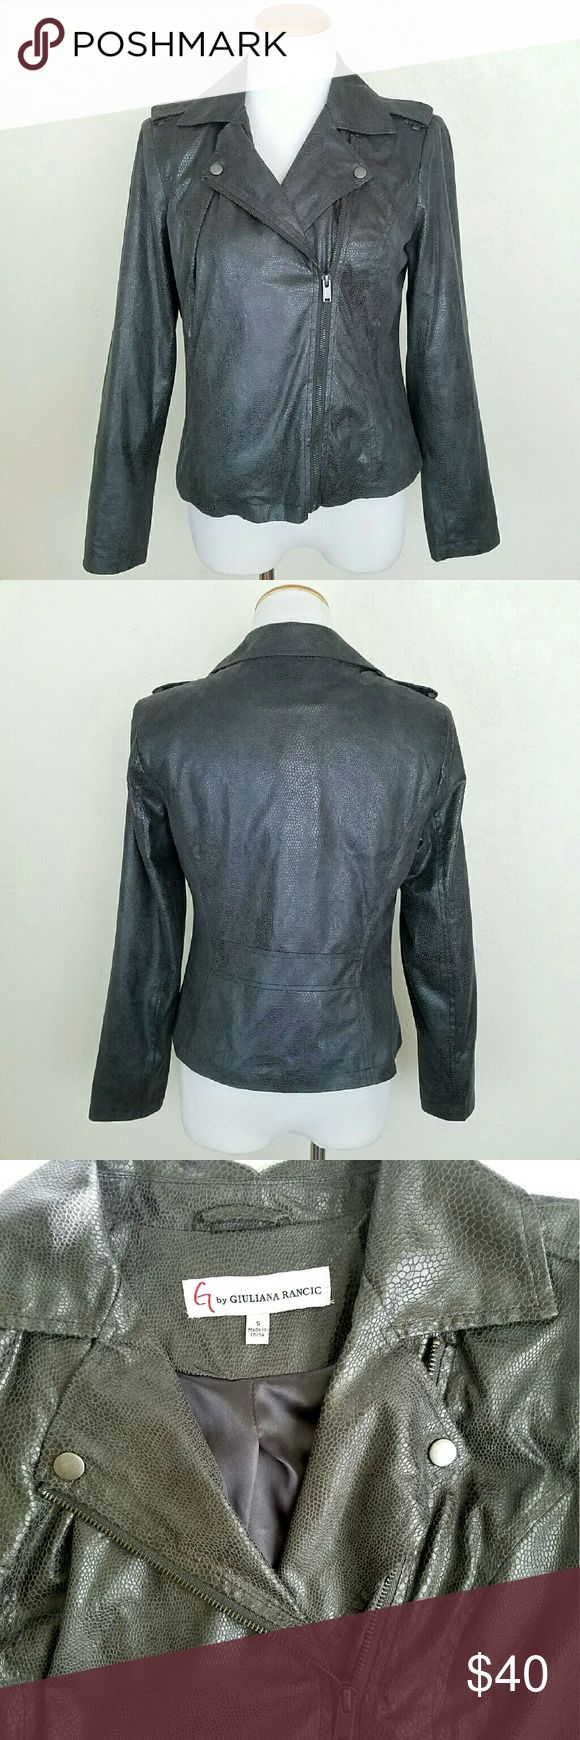 G by Giuliana Rancic Moto Jacket G by Giuliana Rancic Moto Jacket. Gray. NWOT.  Bust 20 Length 21  No Trade or PP Bundle discounts Offers Considered Giuliana Rancic Jackets & Coats